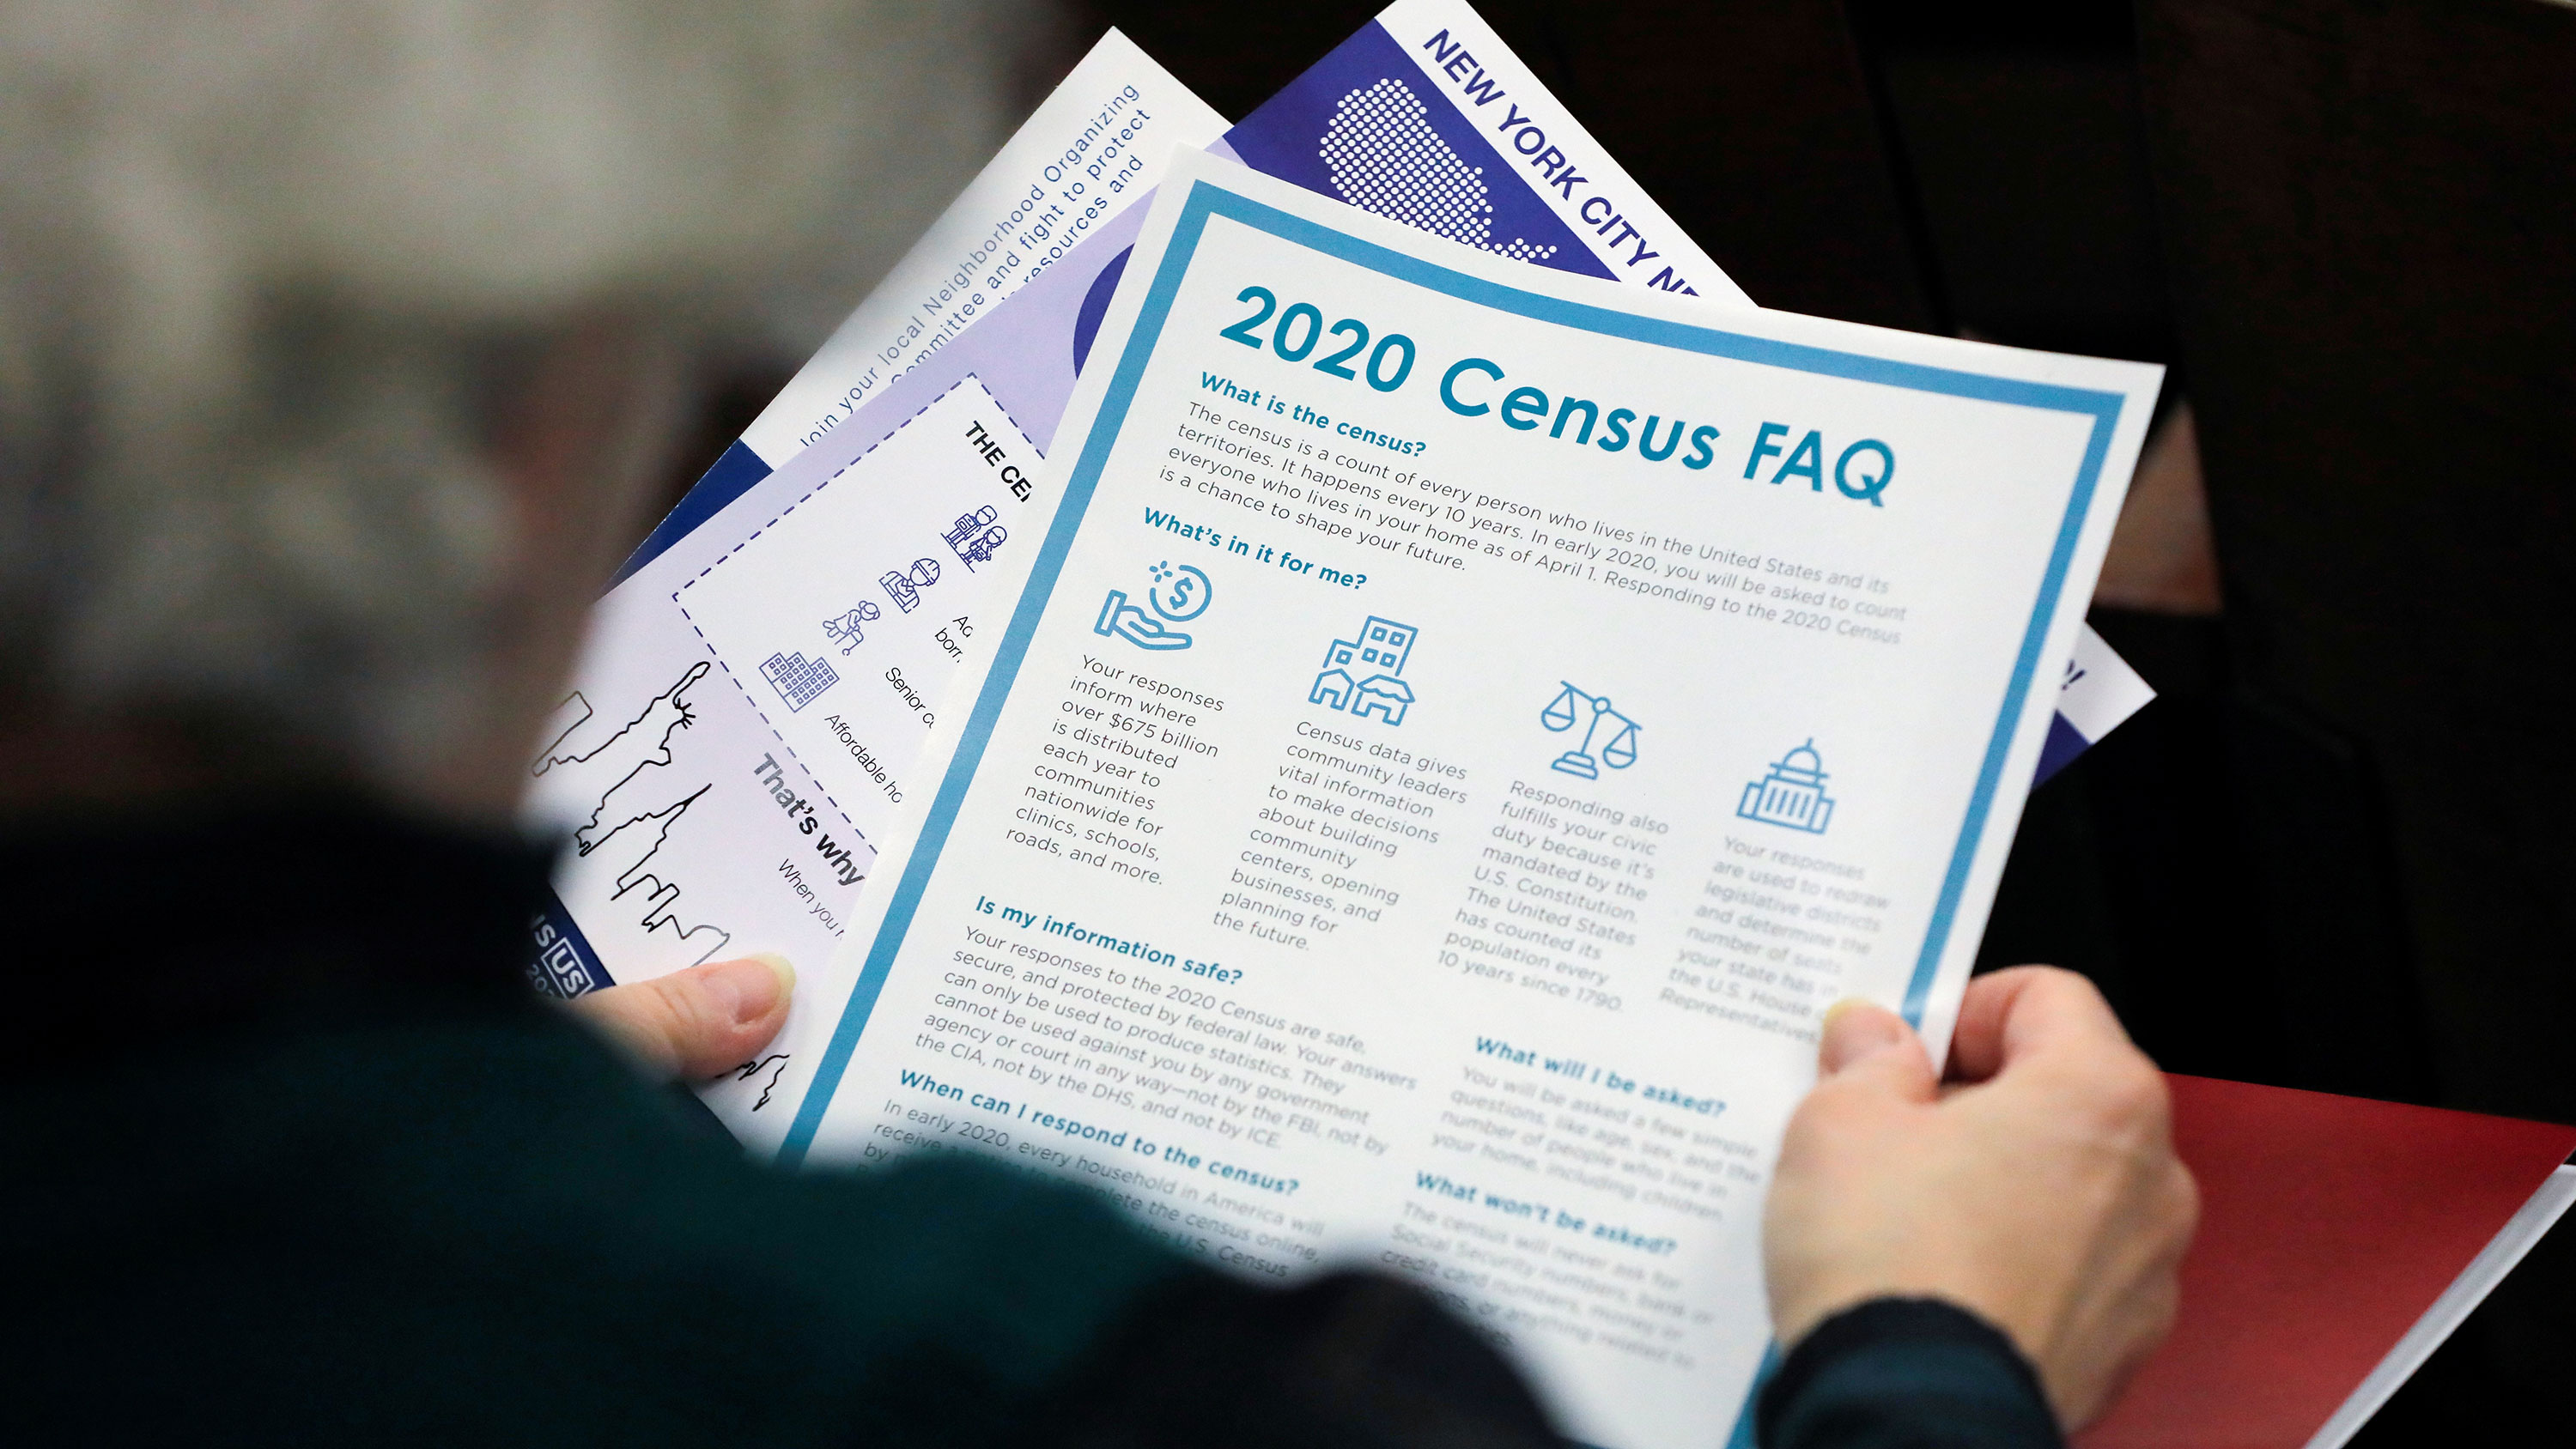 Trump administration plans to appeal second census lawsuit to Supreme Court